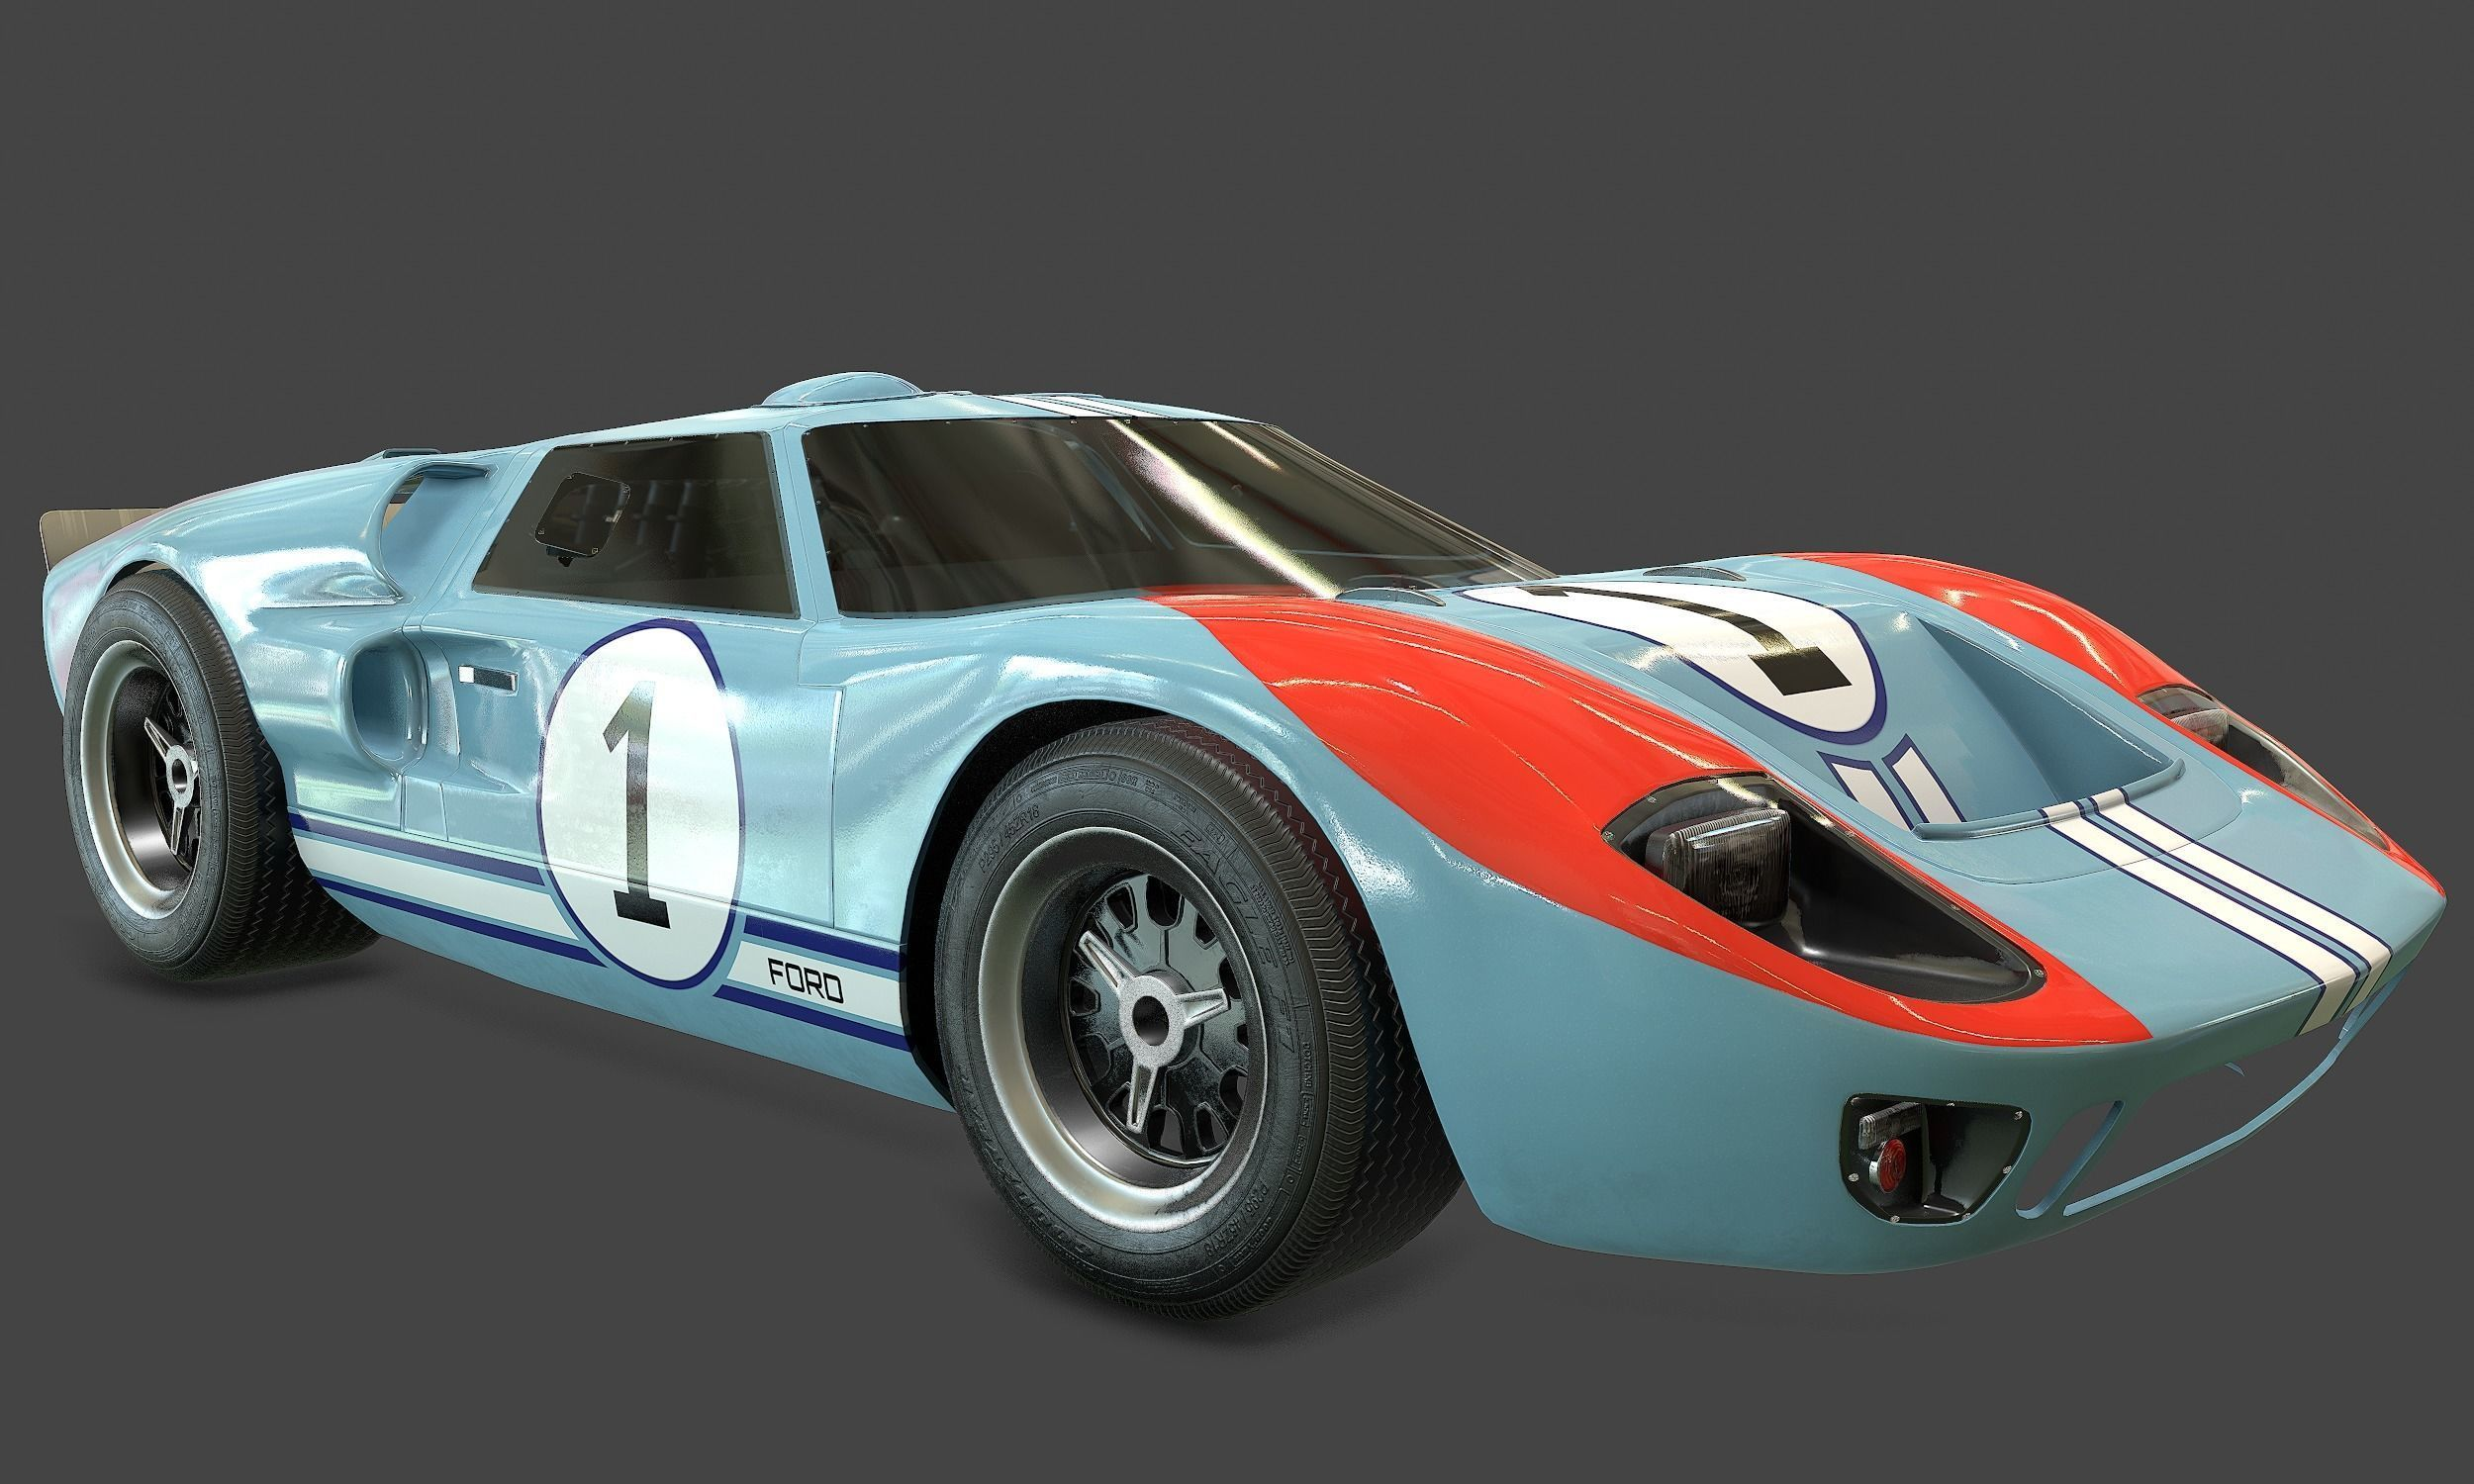 Ford Gt40 Shelby Mk2 1966 Rigged 3d Asset Cgtrader